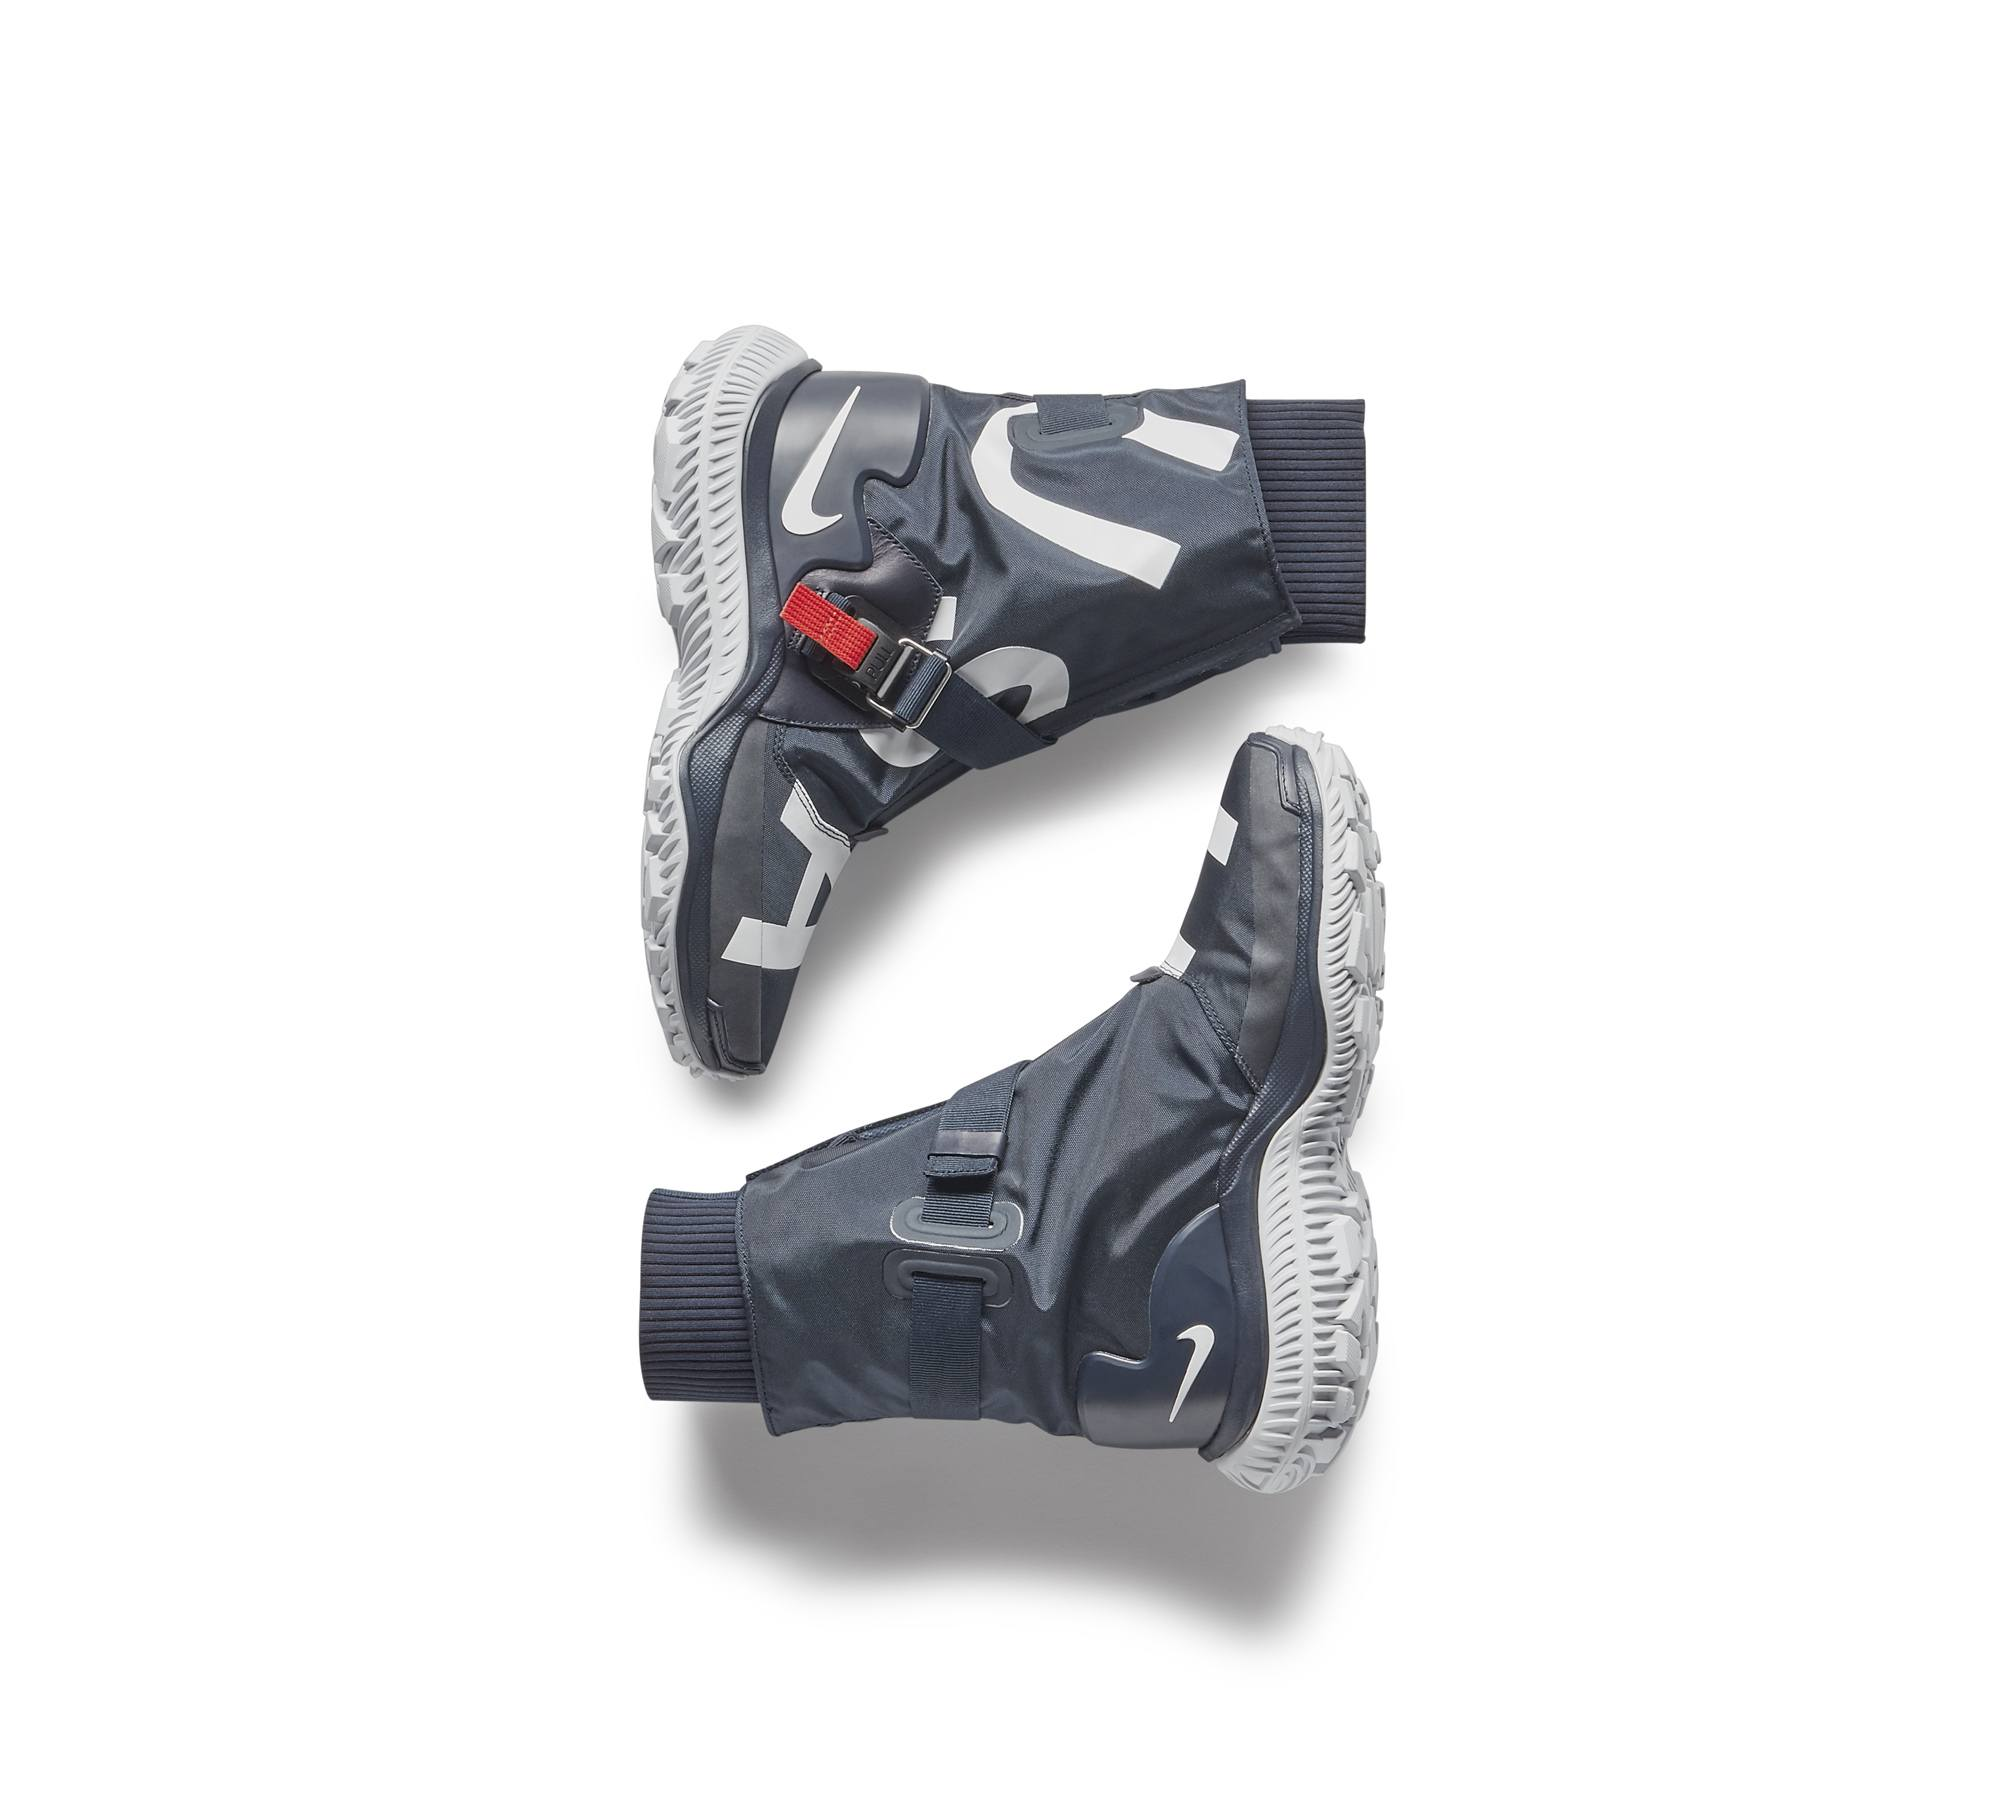 Olympic Women's podium boots by Nike